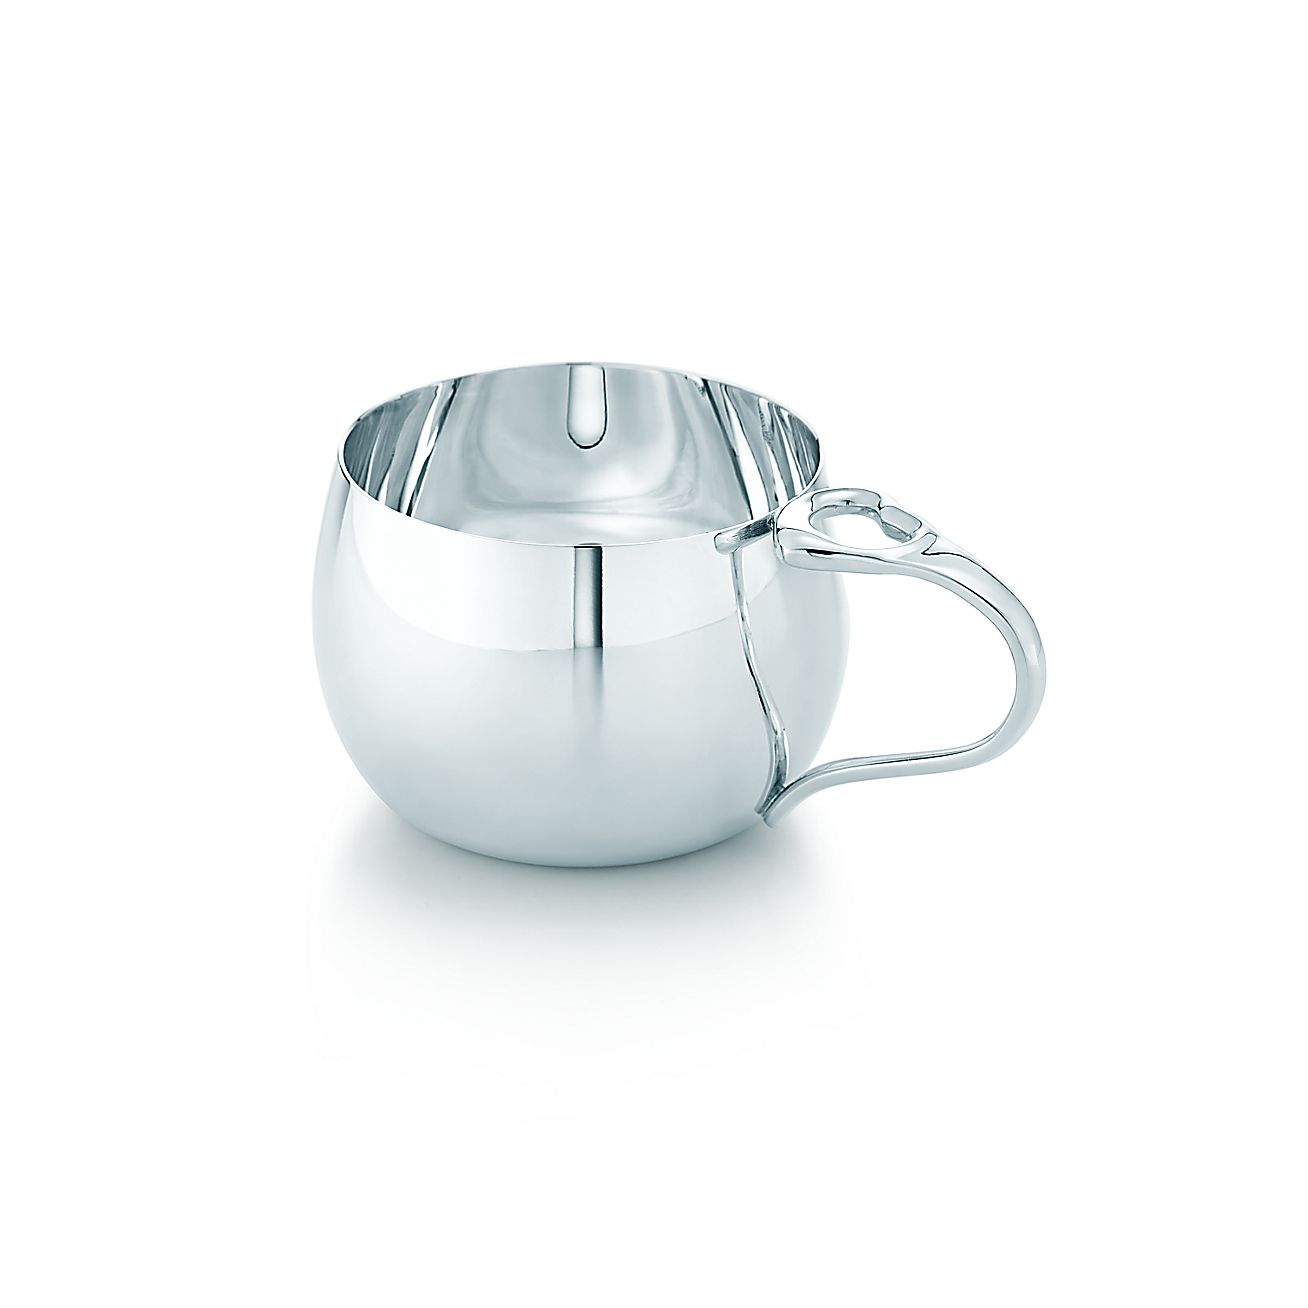 Tiffany Baby Gifts Australia : Elsa peretti open heart baby cup in sterling silver